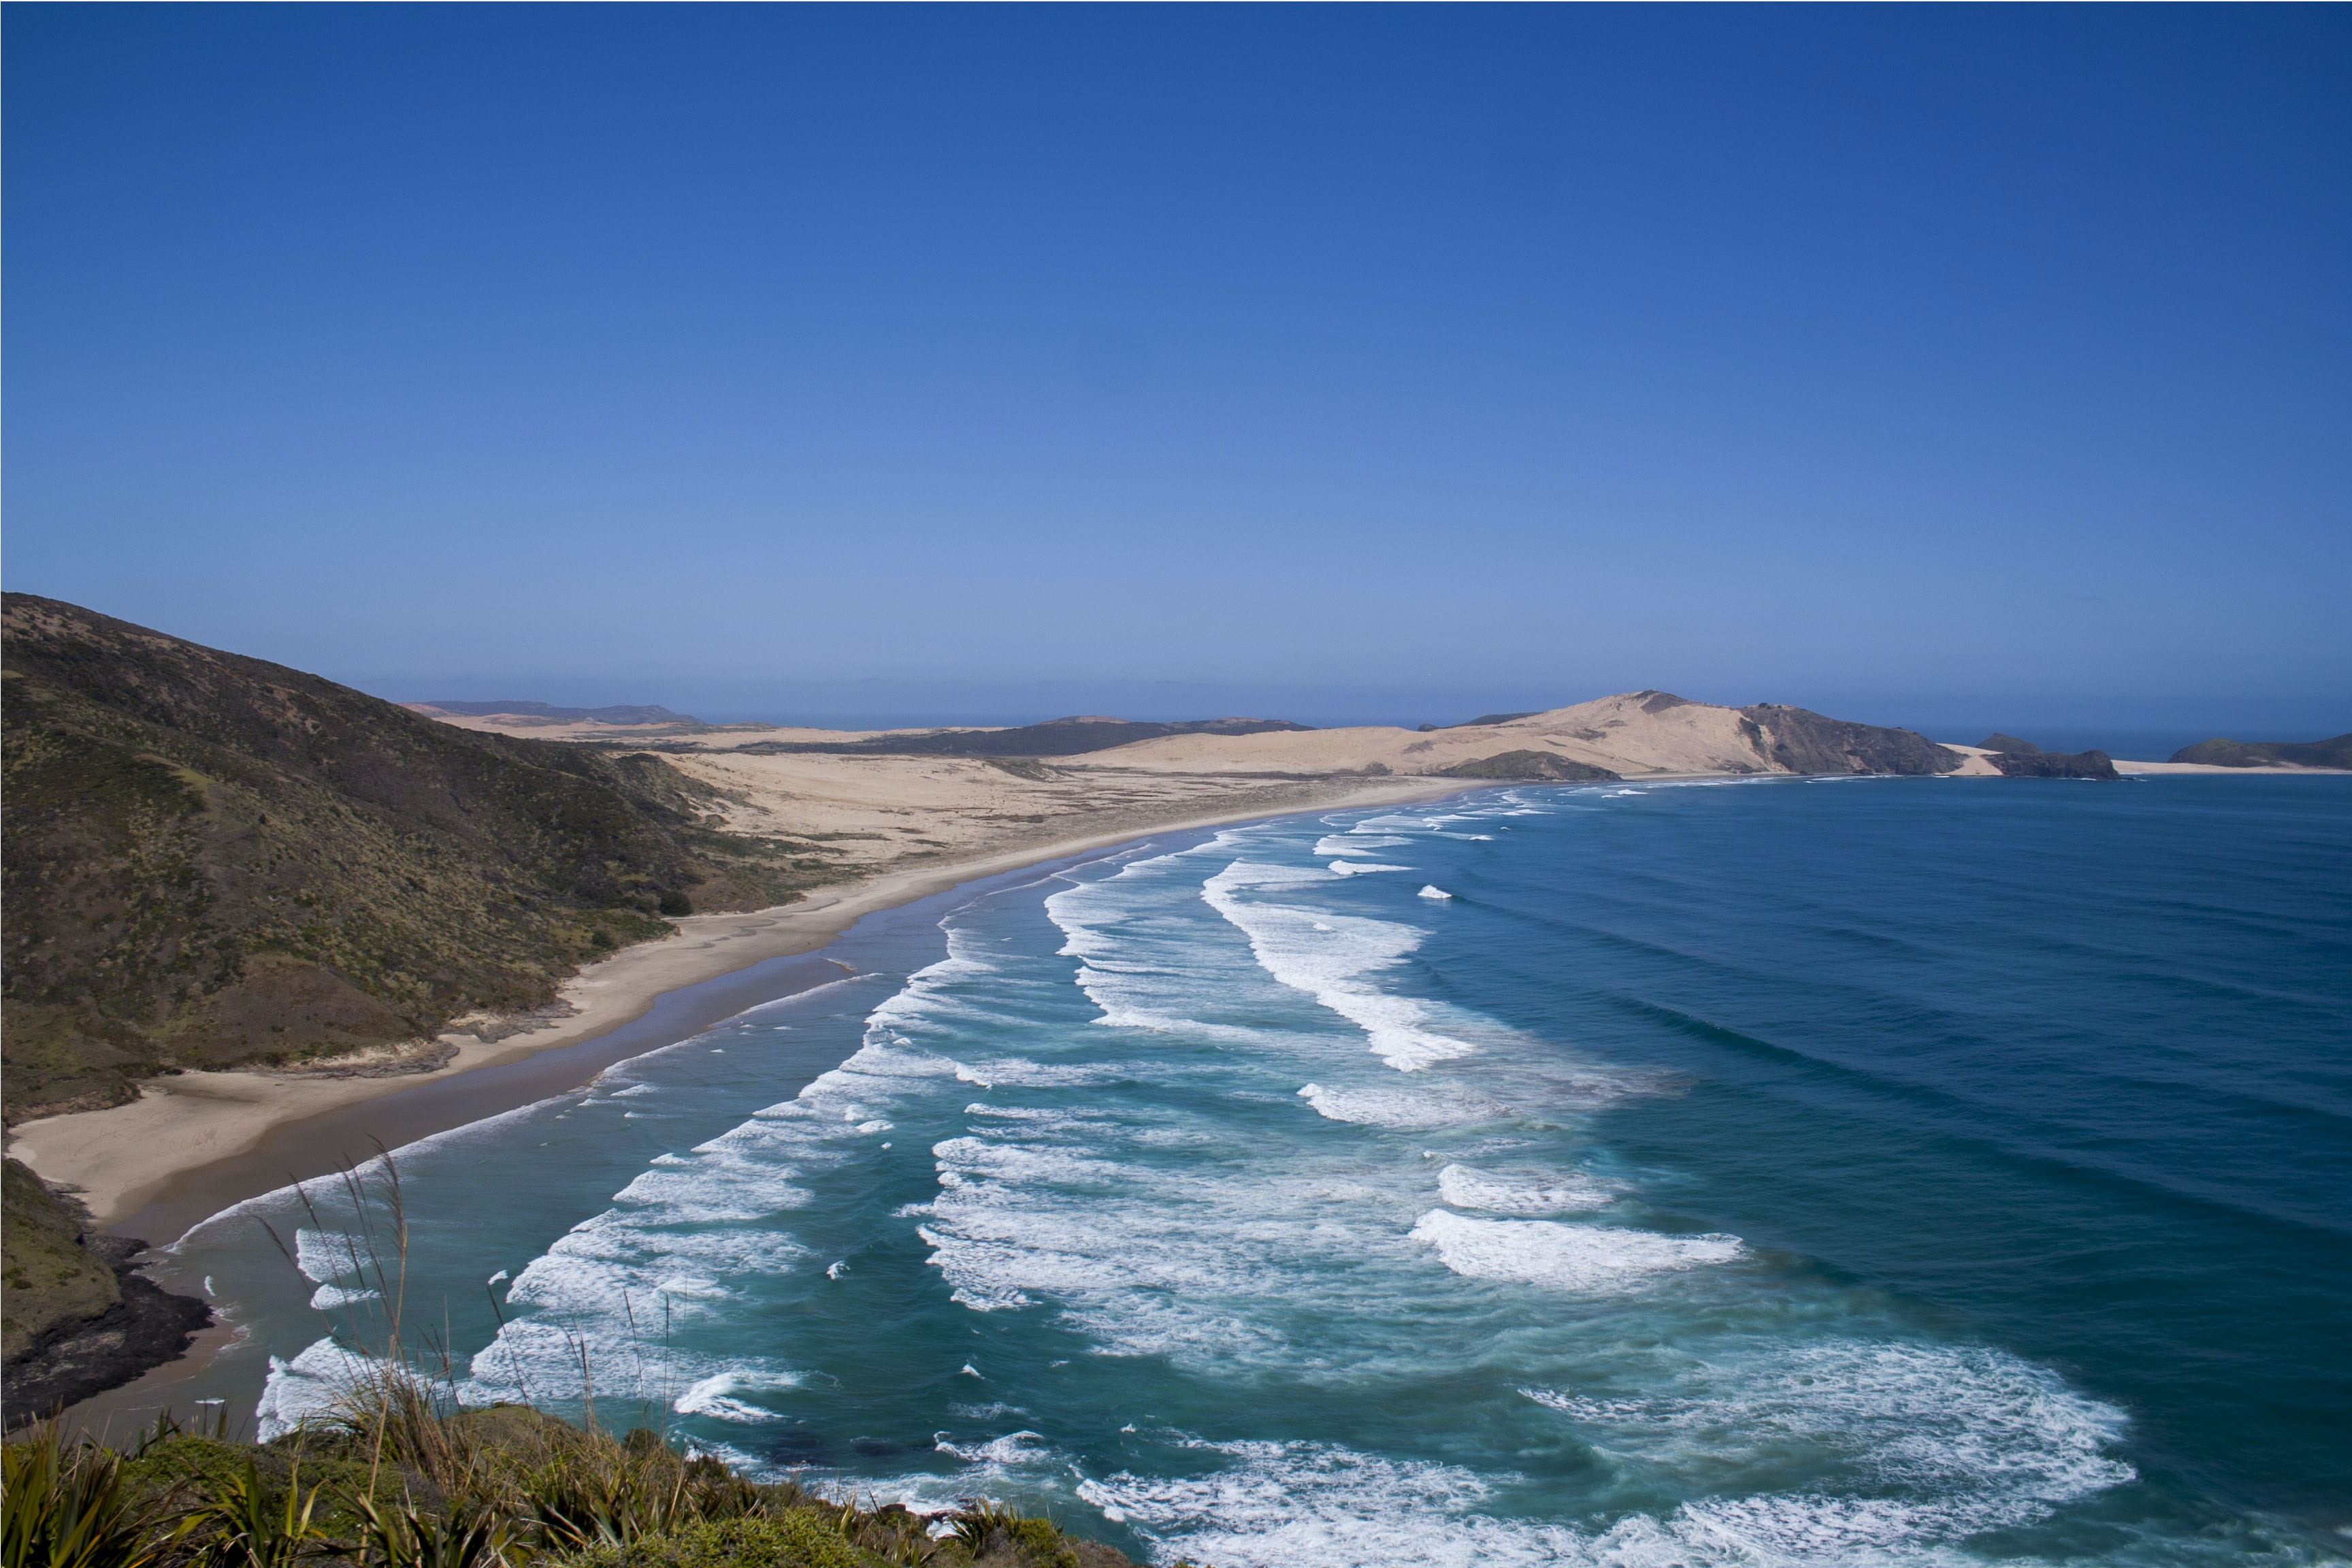 Ocean washing on the hilly sand shore at Cape Reinga